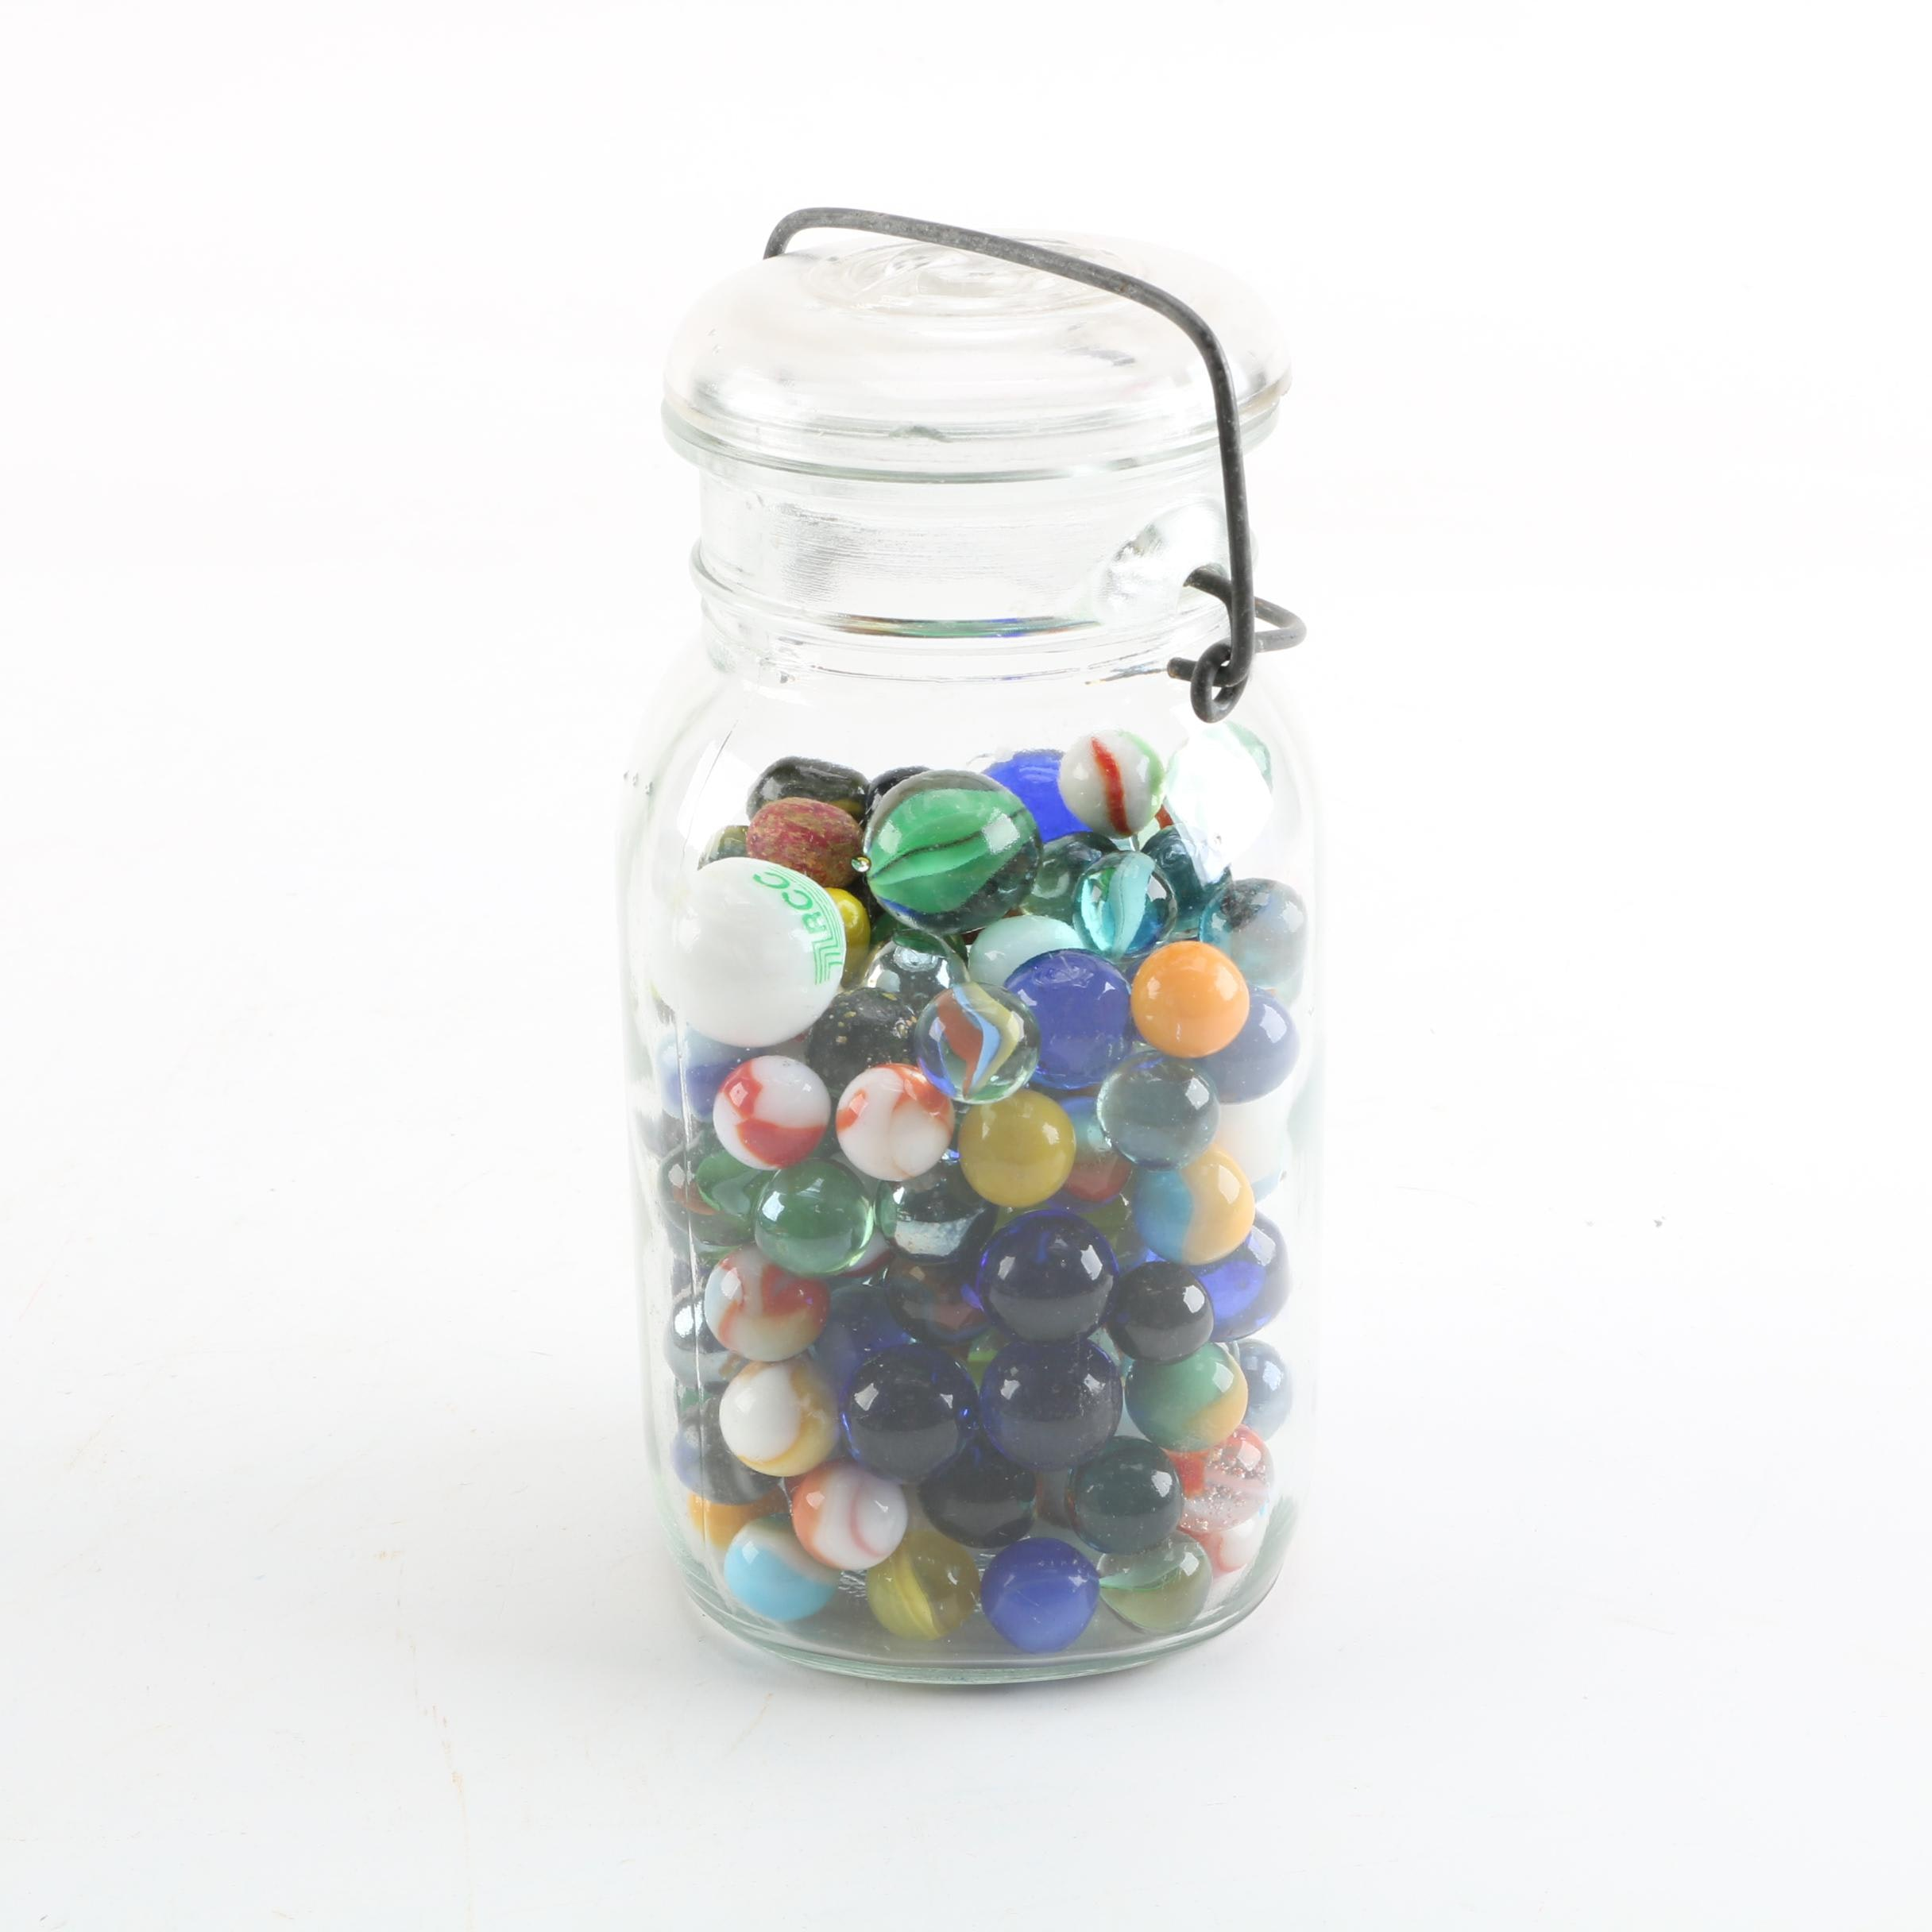 Vintage Ball Jar with Assorted Marbles